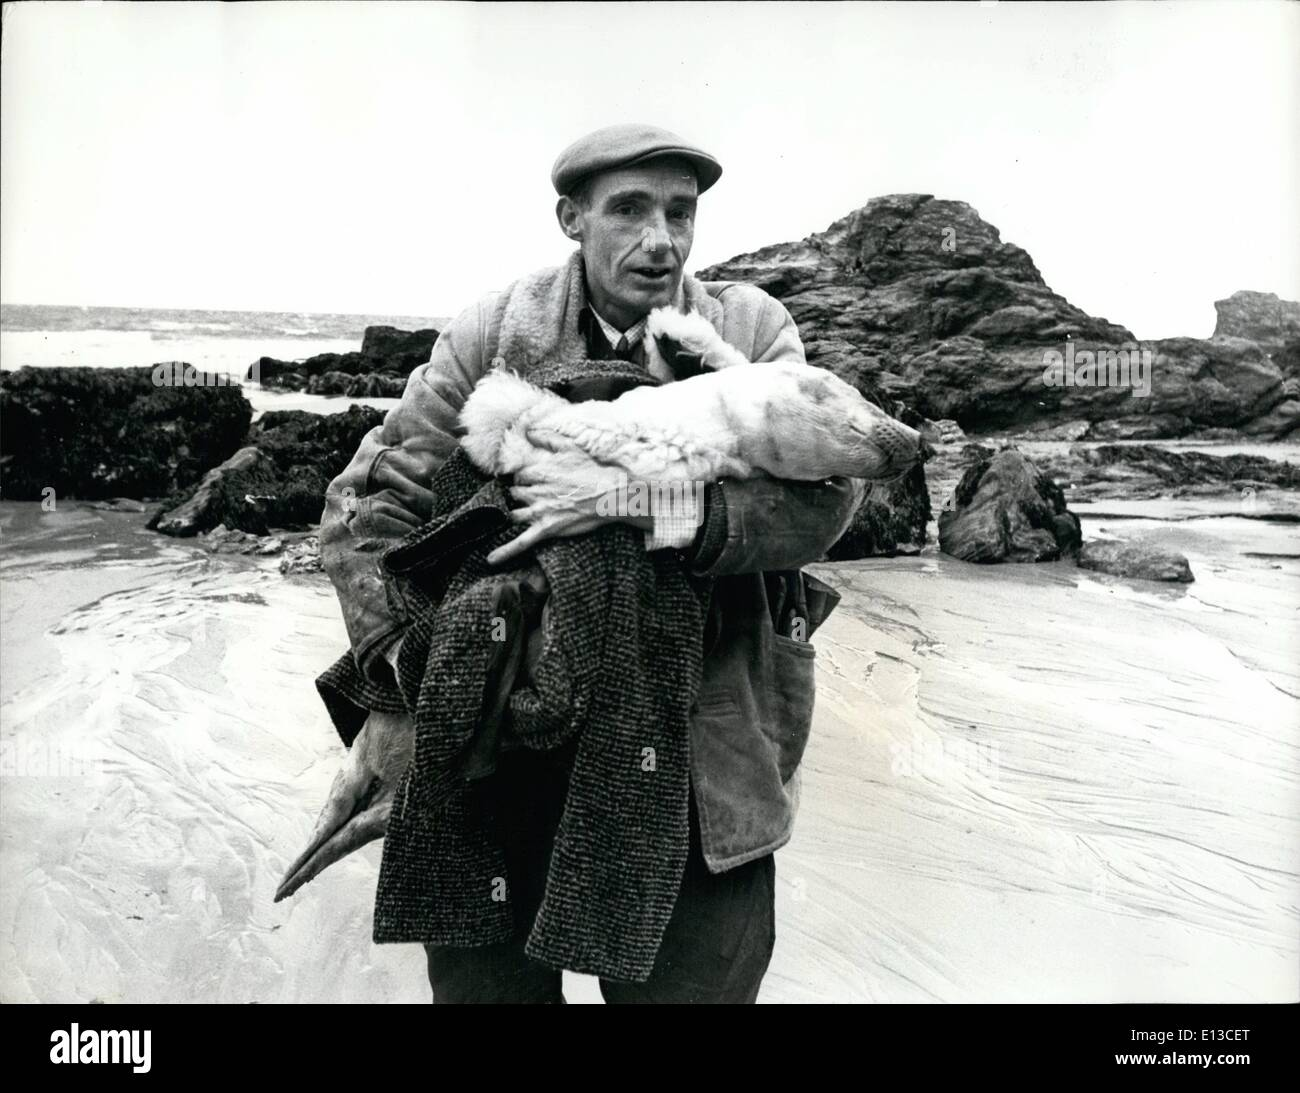 Mar. 02, 2012 - Ken Jones: The Man who saves the seas. Instrumental in the fight to save lives of hundred of baby seals washed up on the coasts of Cornwall, is 42 year old welsh cafe proppietor Ken Jones,of St. Agnes. Ken first became interested in seals in 1961, when he resound a sick baby seal, Receiving much publicity in the local press. When another young seal was washed up, Ken was asked to look after it - and in a short time it was healthy and released - Stock Image